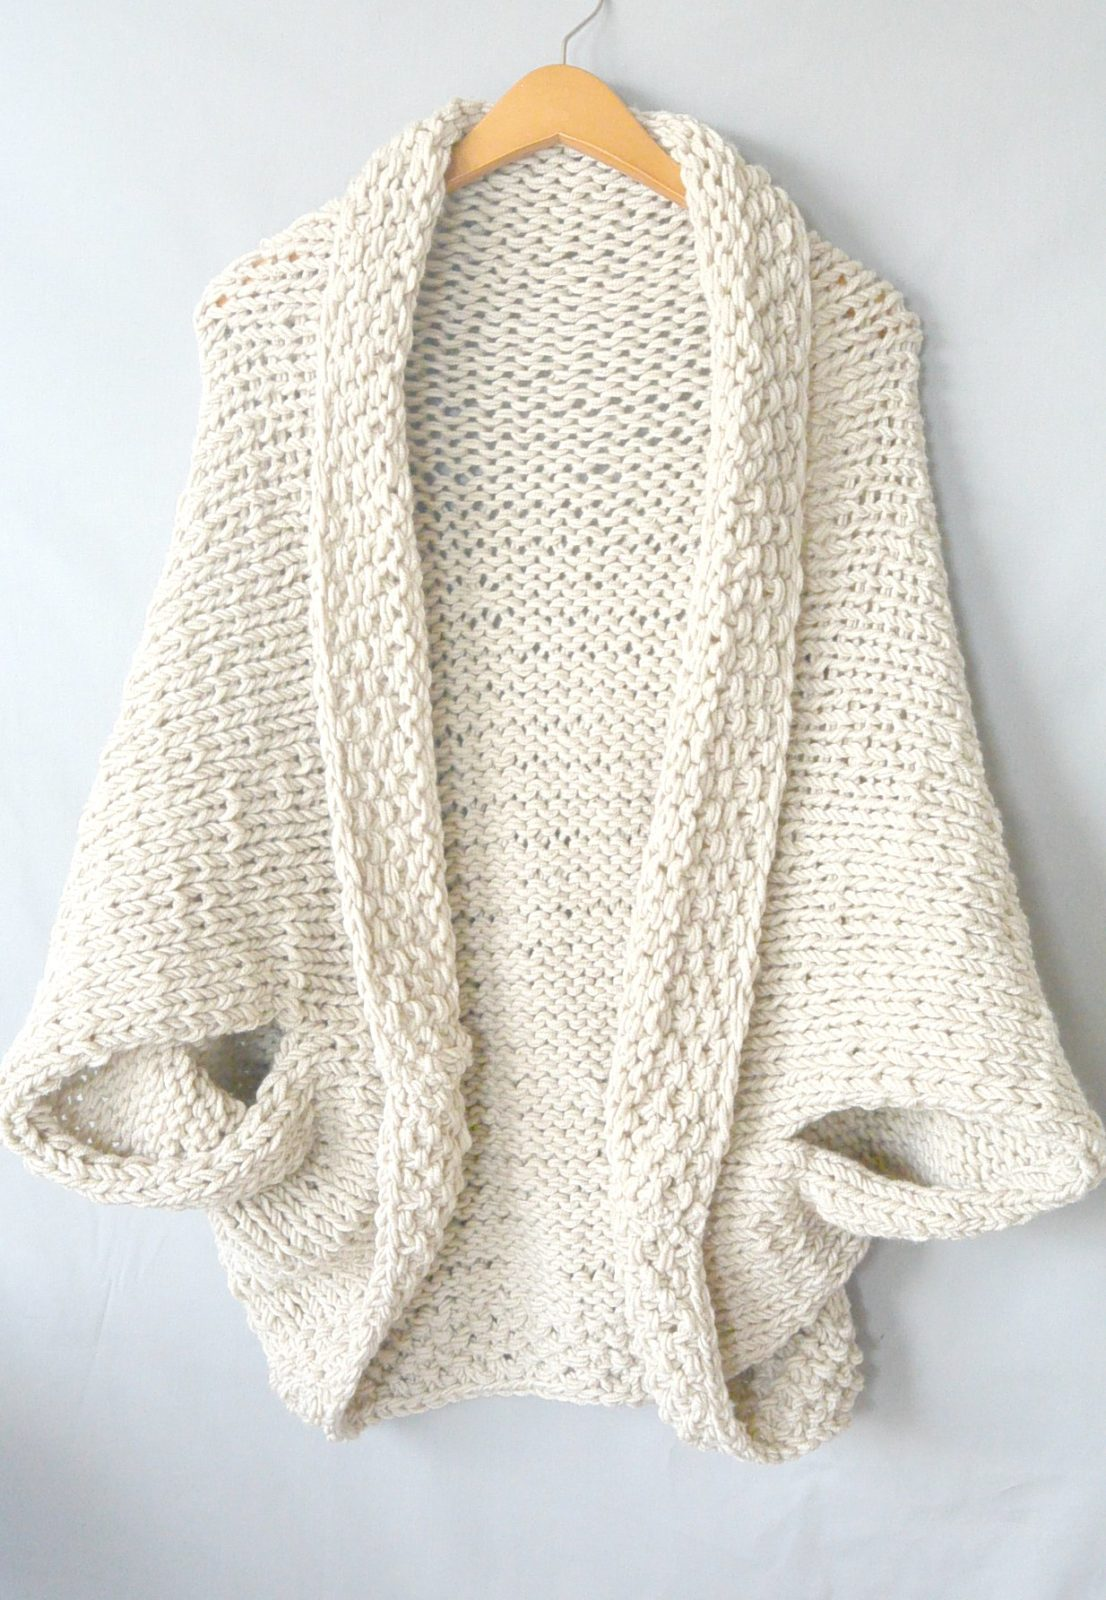 Knitting Patterns For Cardigan Sweaters : Easy Knit Blanket Sweater Pattern   Mama In A Stitch